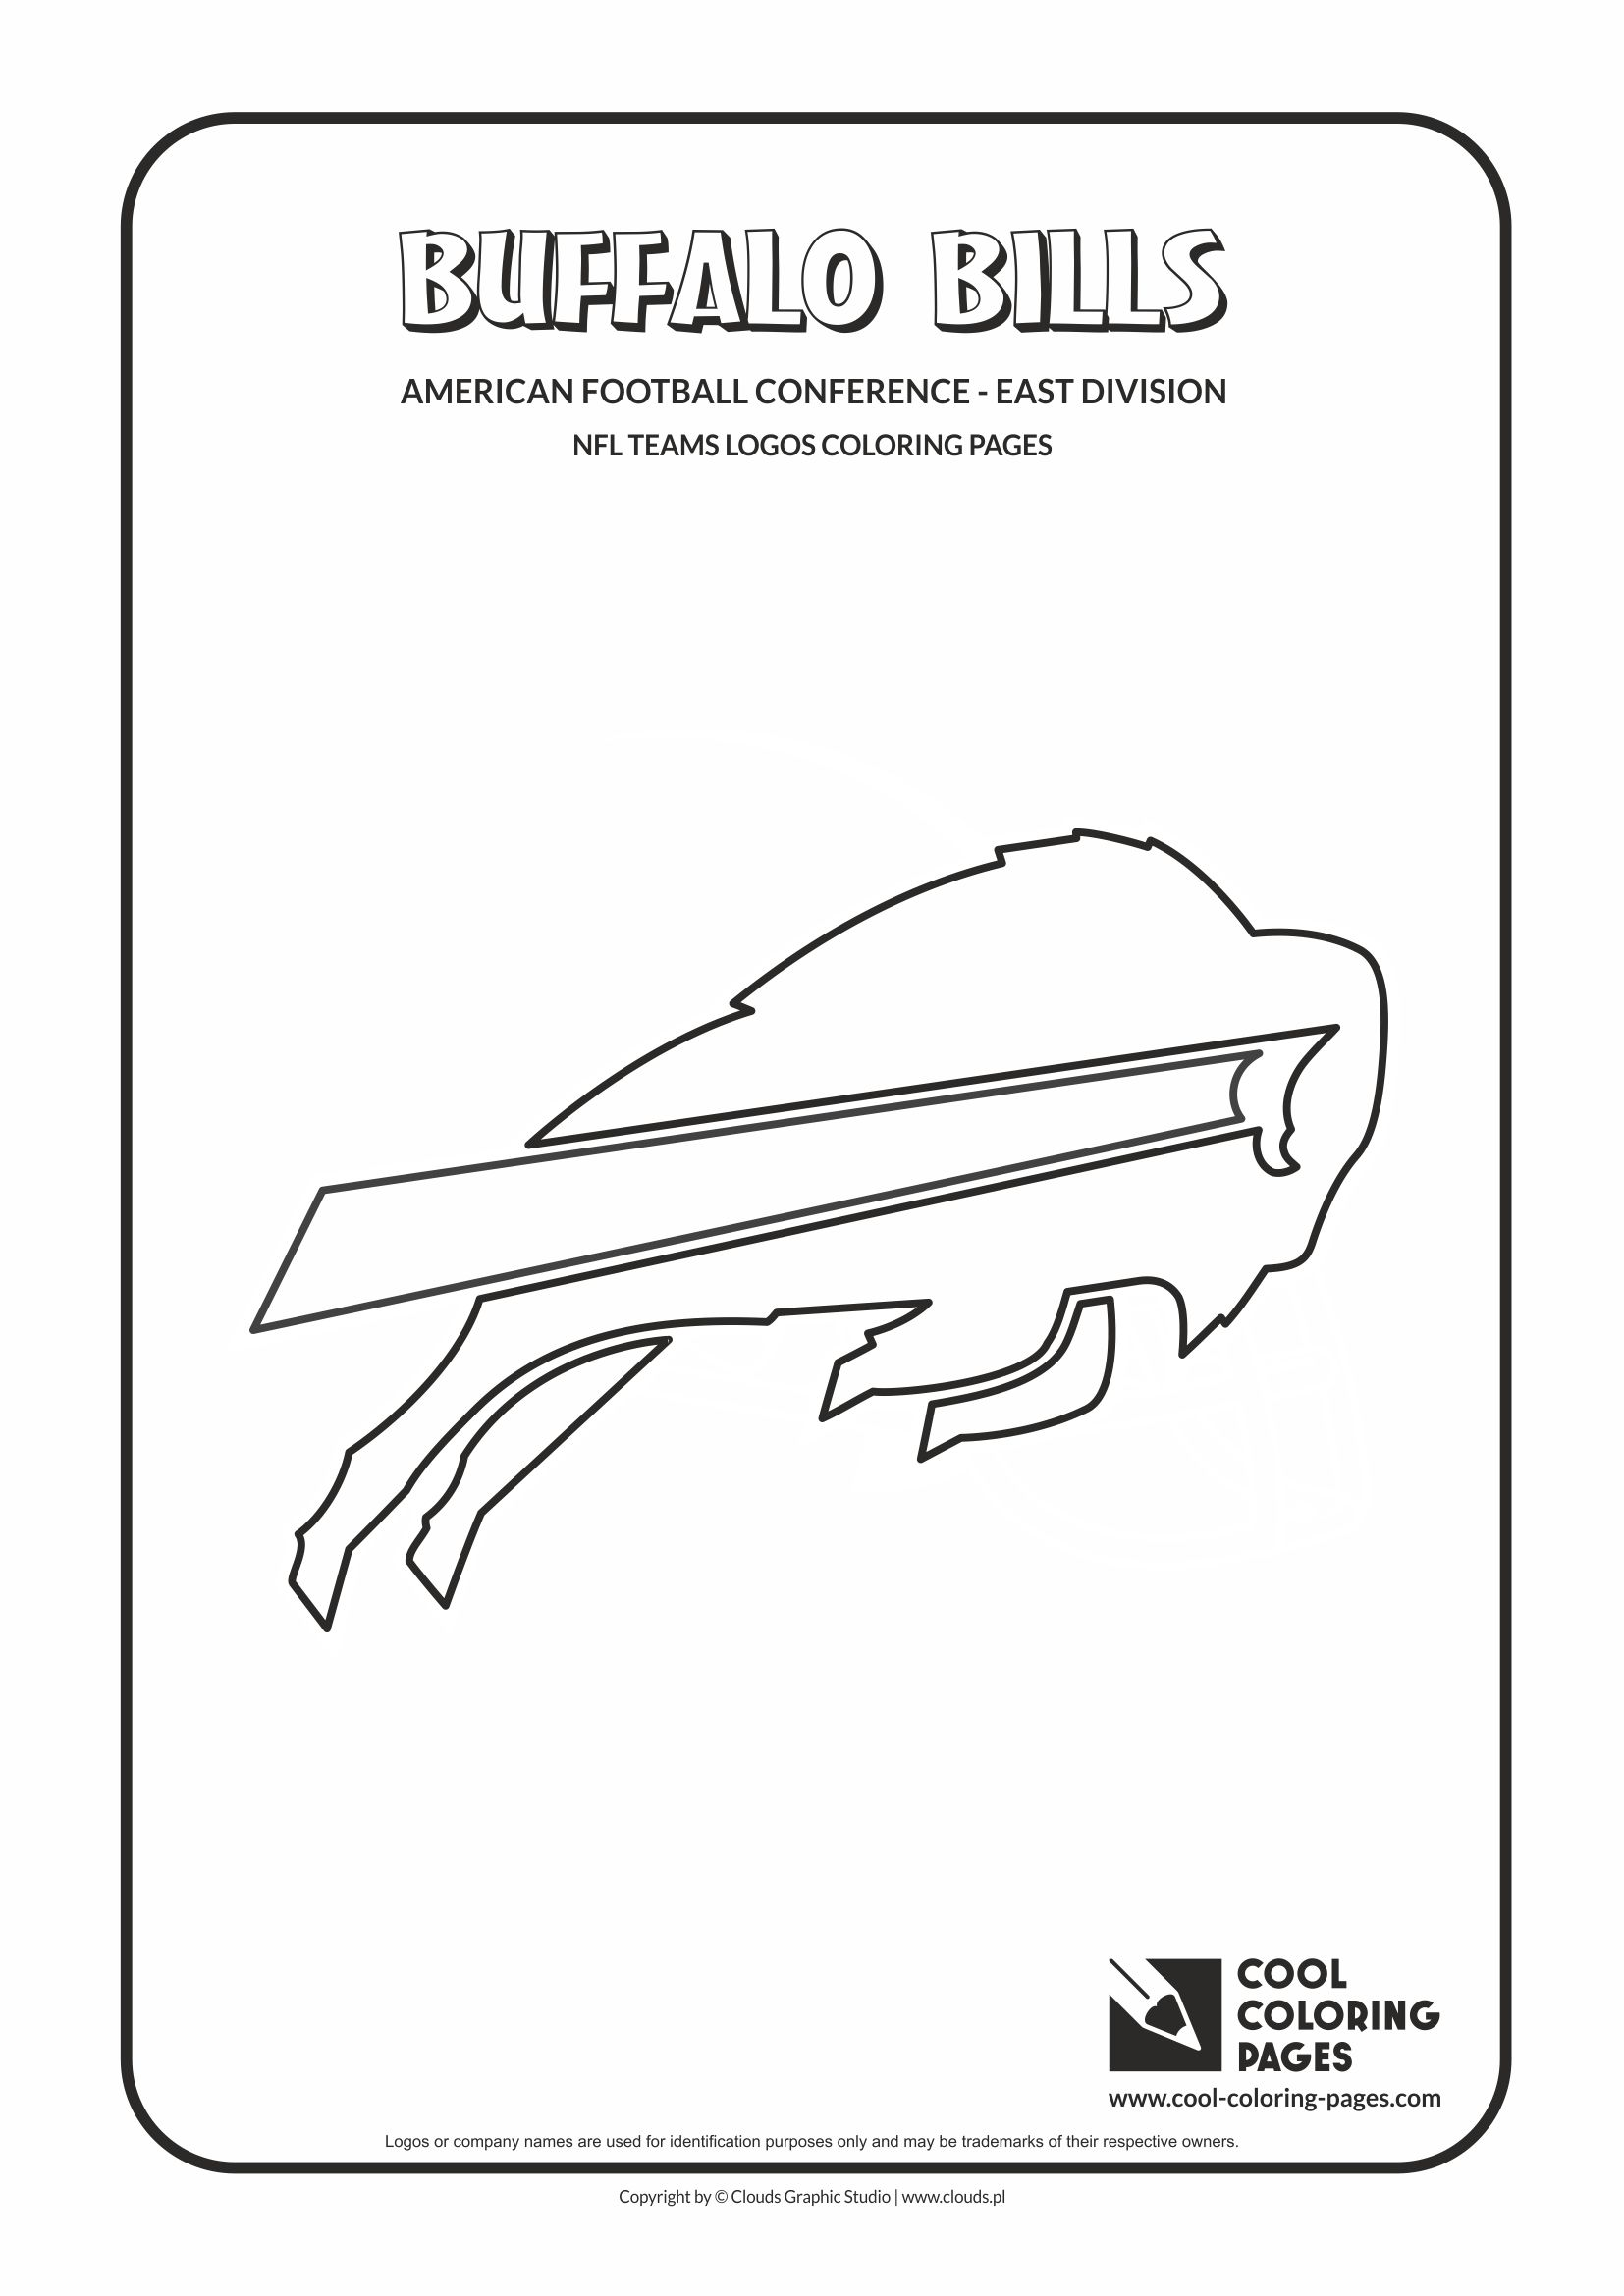 Cool Coloring Pages - NFL American Football Clubs Logos - American Football Conference - East Division / Buffalo Bills logo / Coloring page with Buffalo Bills logo